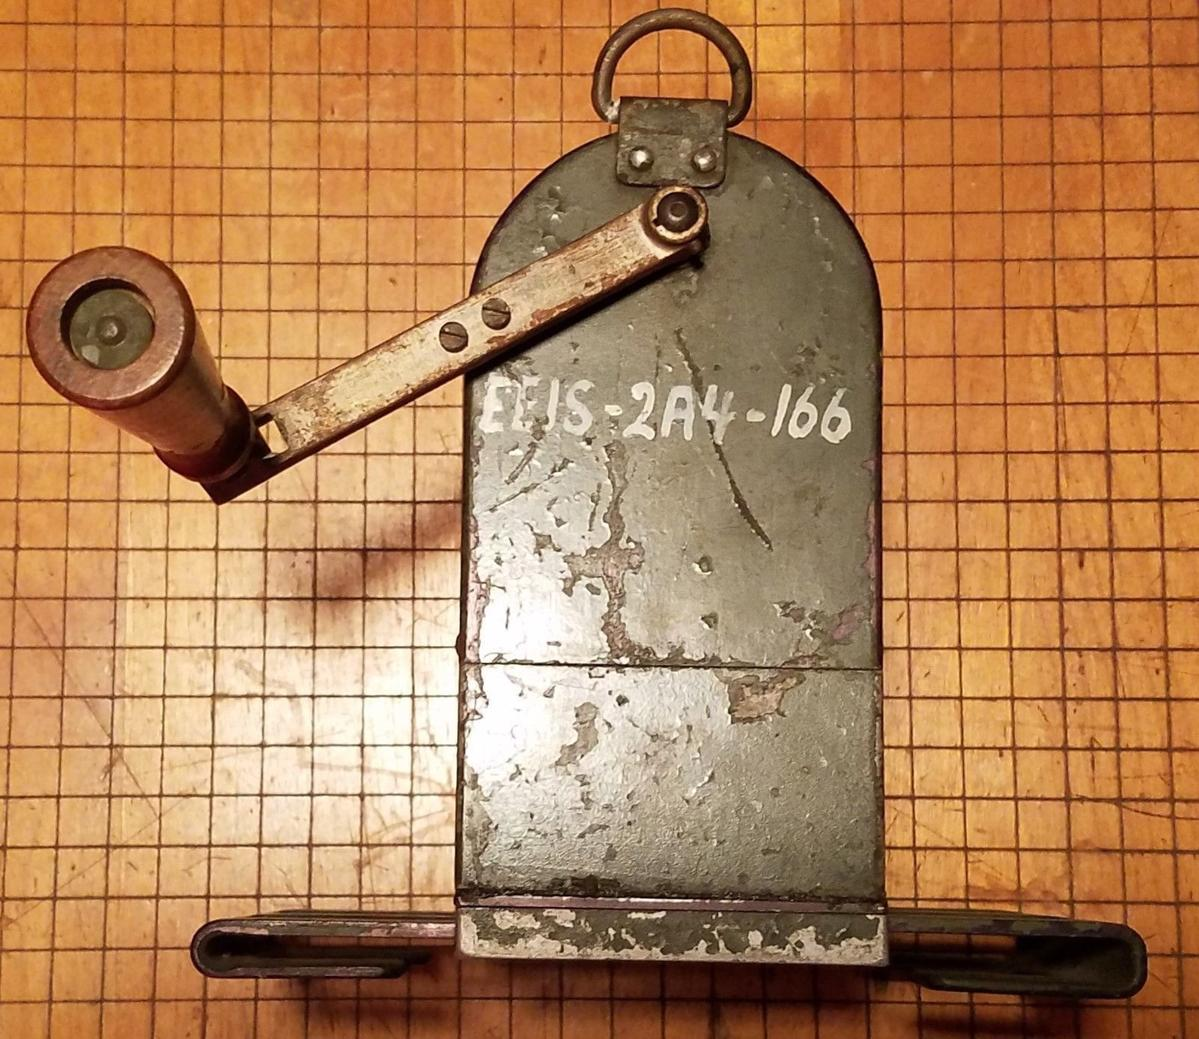 Kn4r Callsign Lookup By Qrz Ham Radio Generator Circuit Breaker Ebay Heres Another Example Of An Eeis Examined Item A Wwii Japanese Army